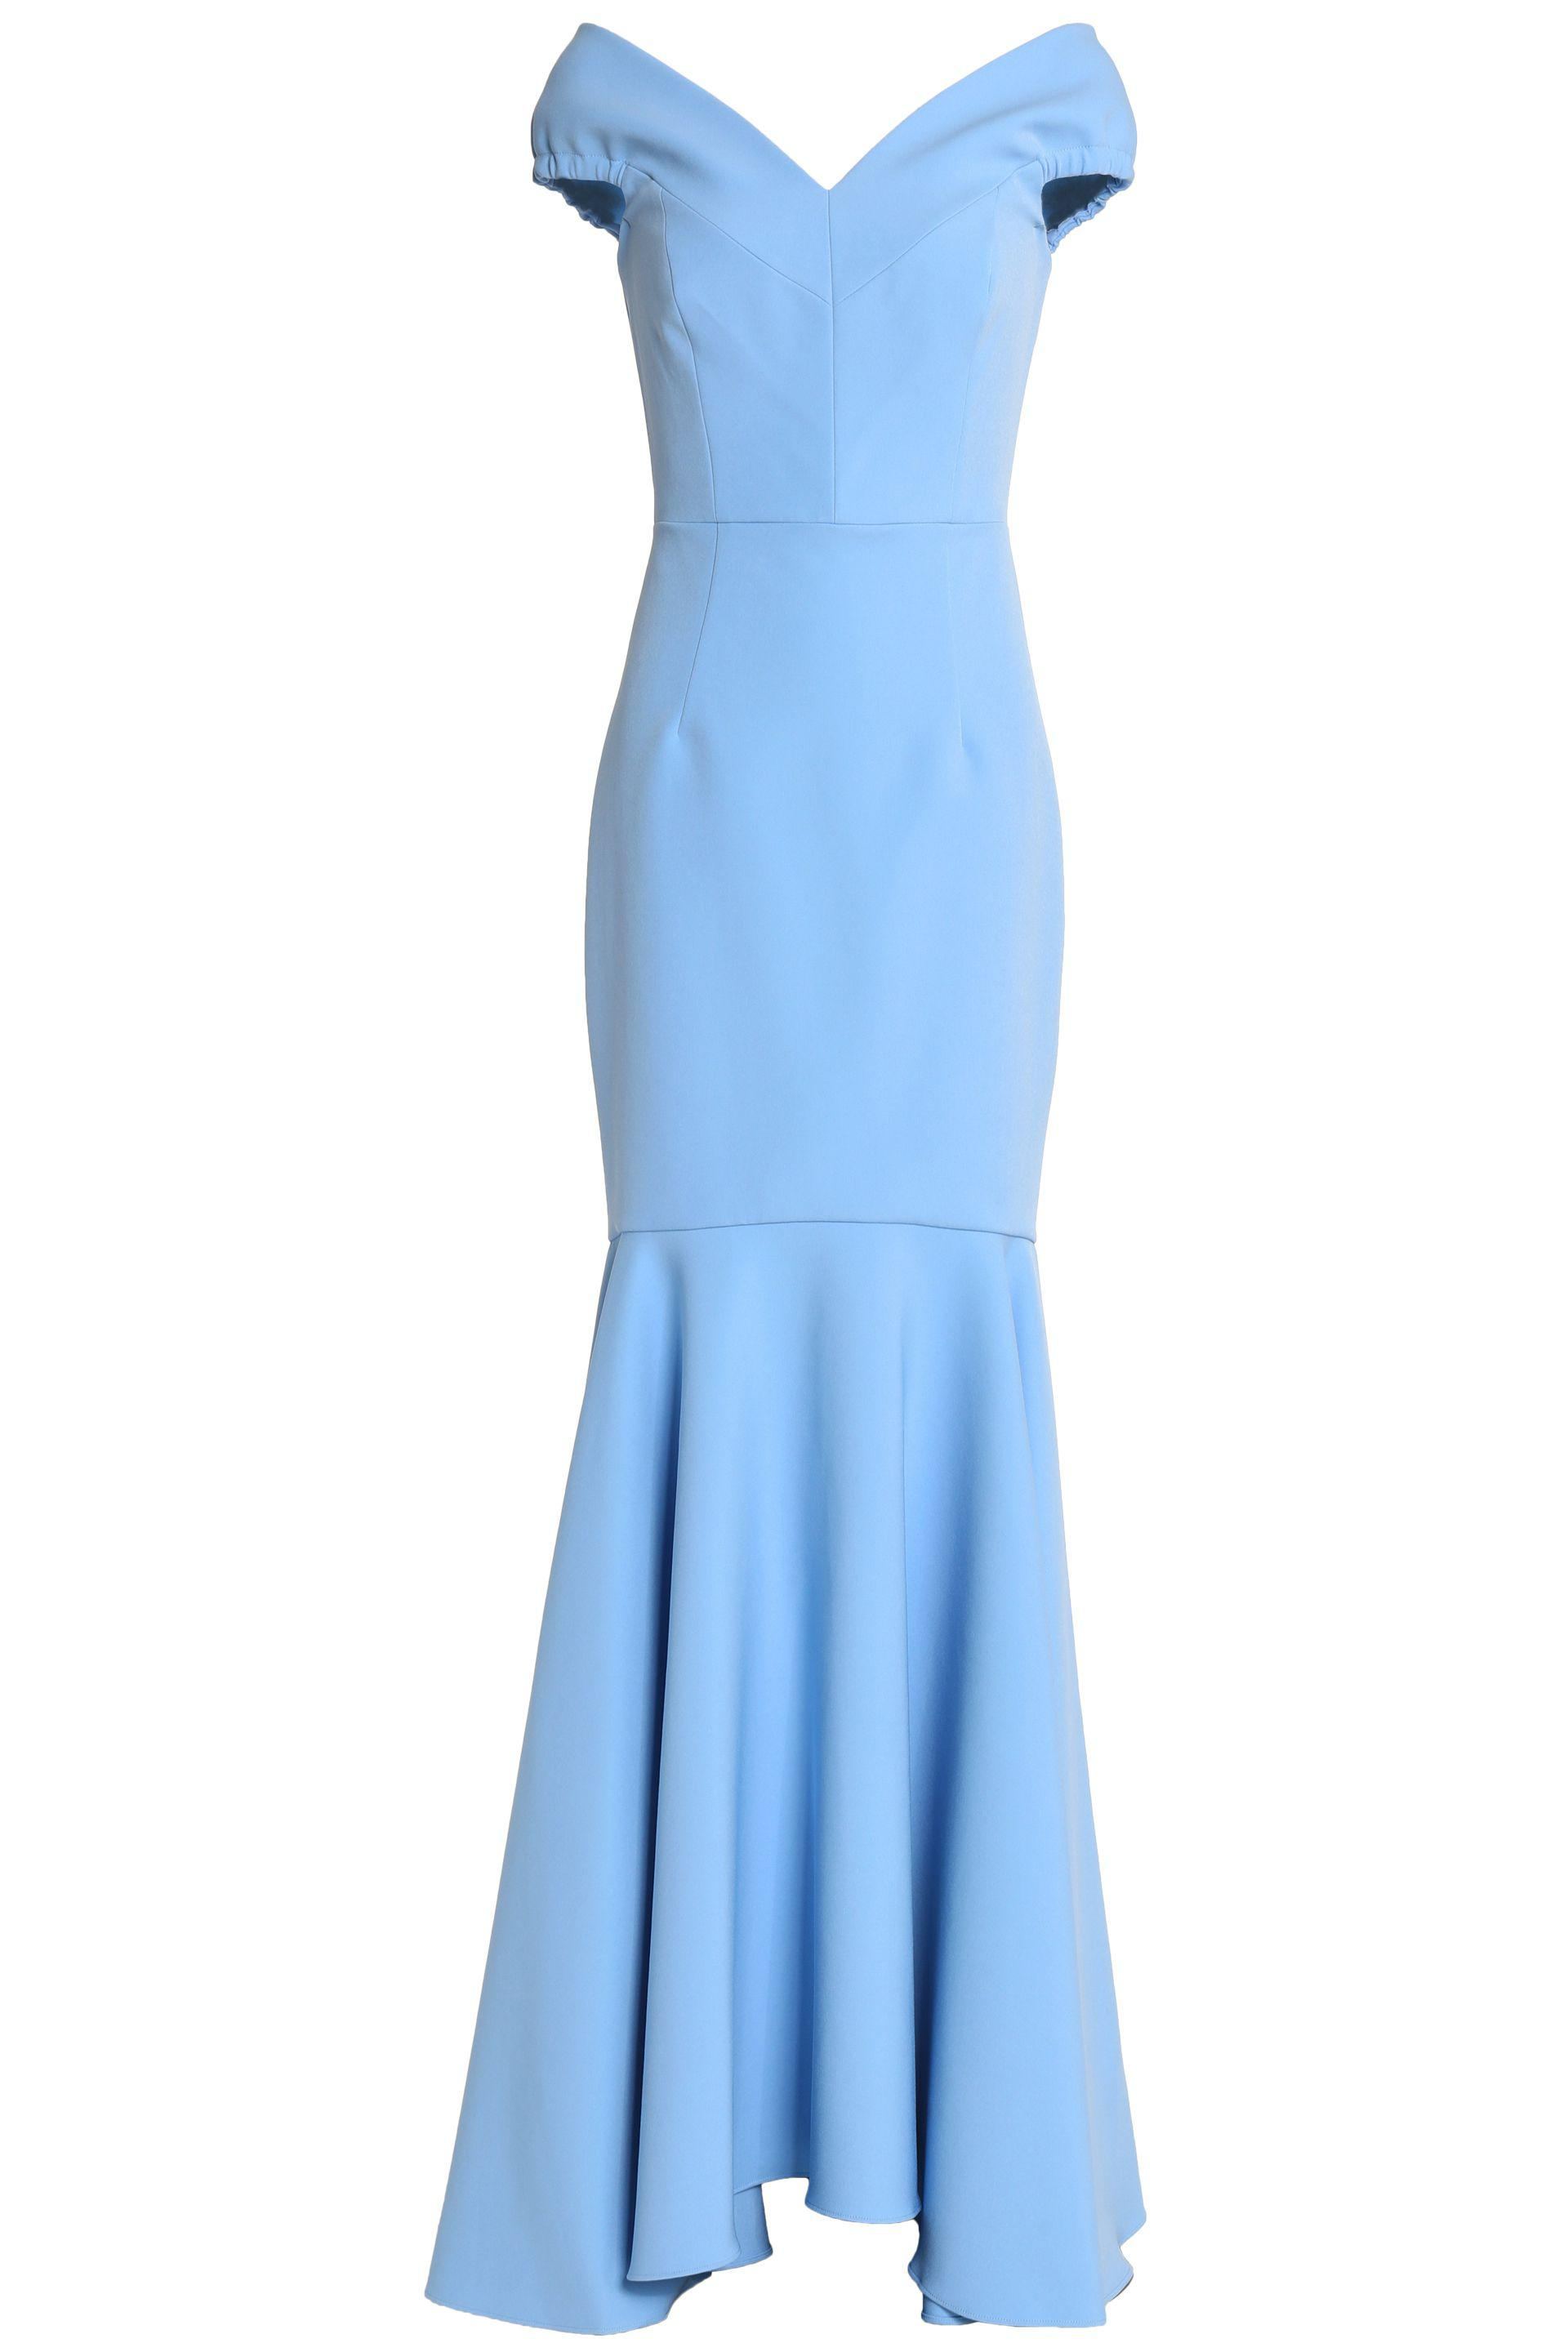 Milly Woman Off-the-shoulder Crepe Gown Blue Size 6 Milly uruoz